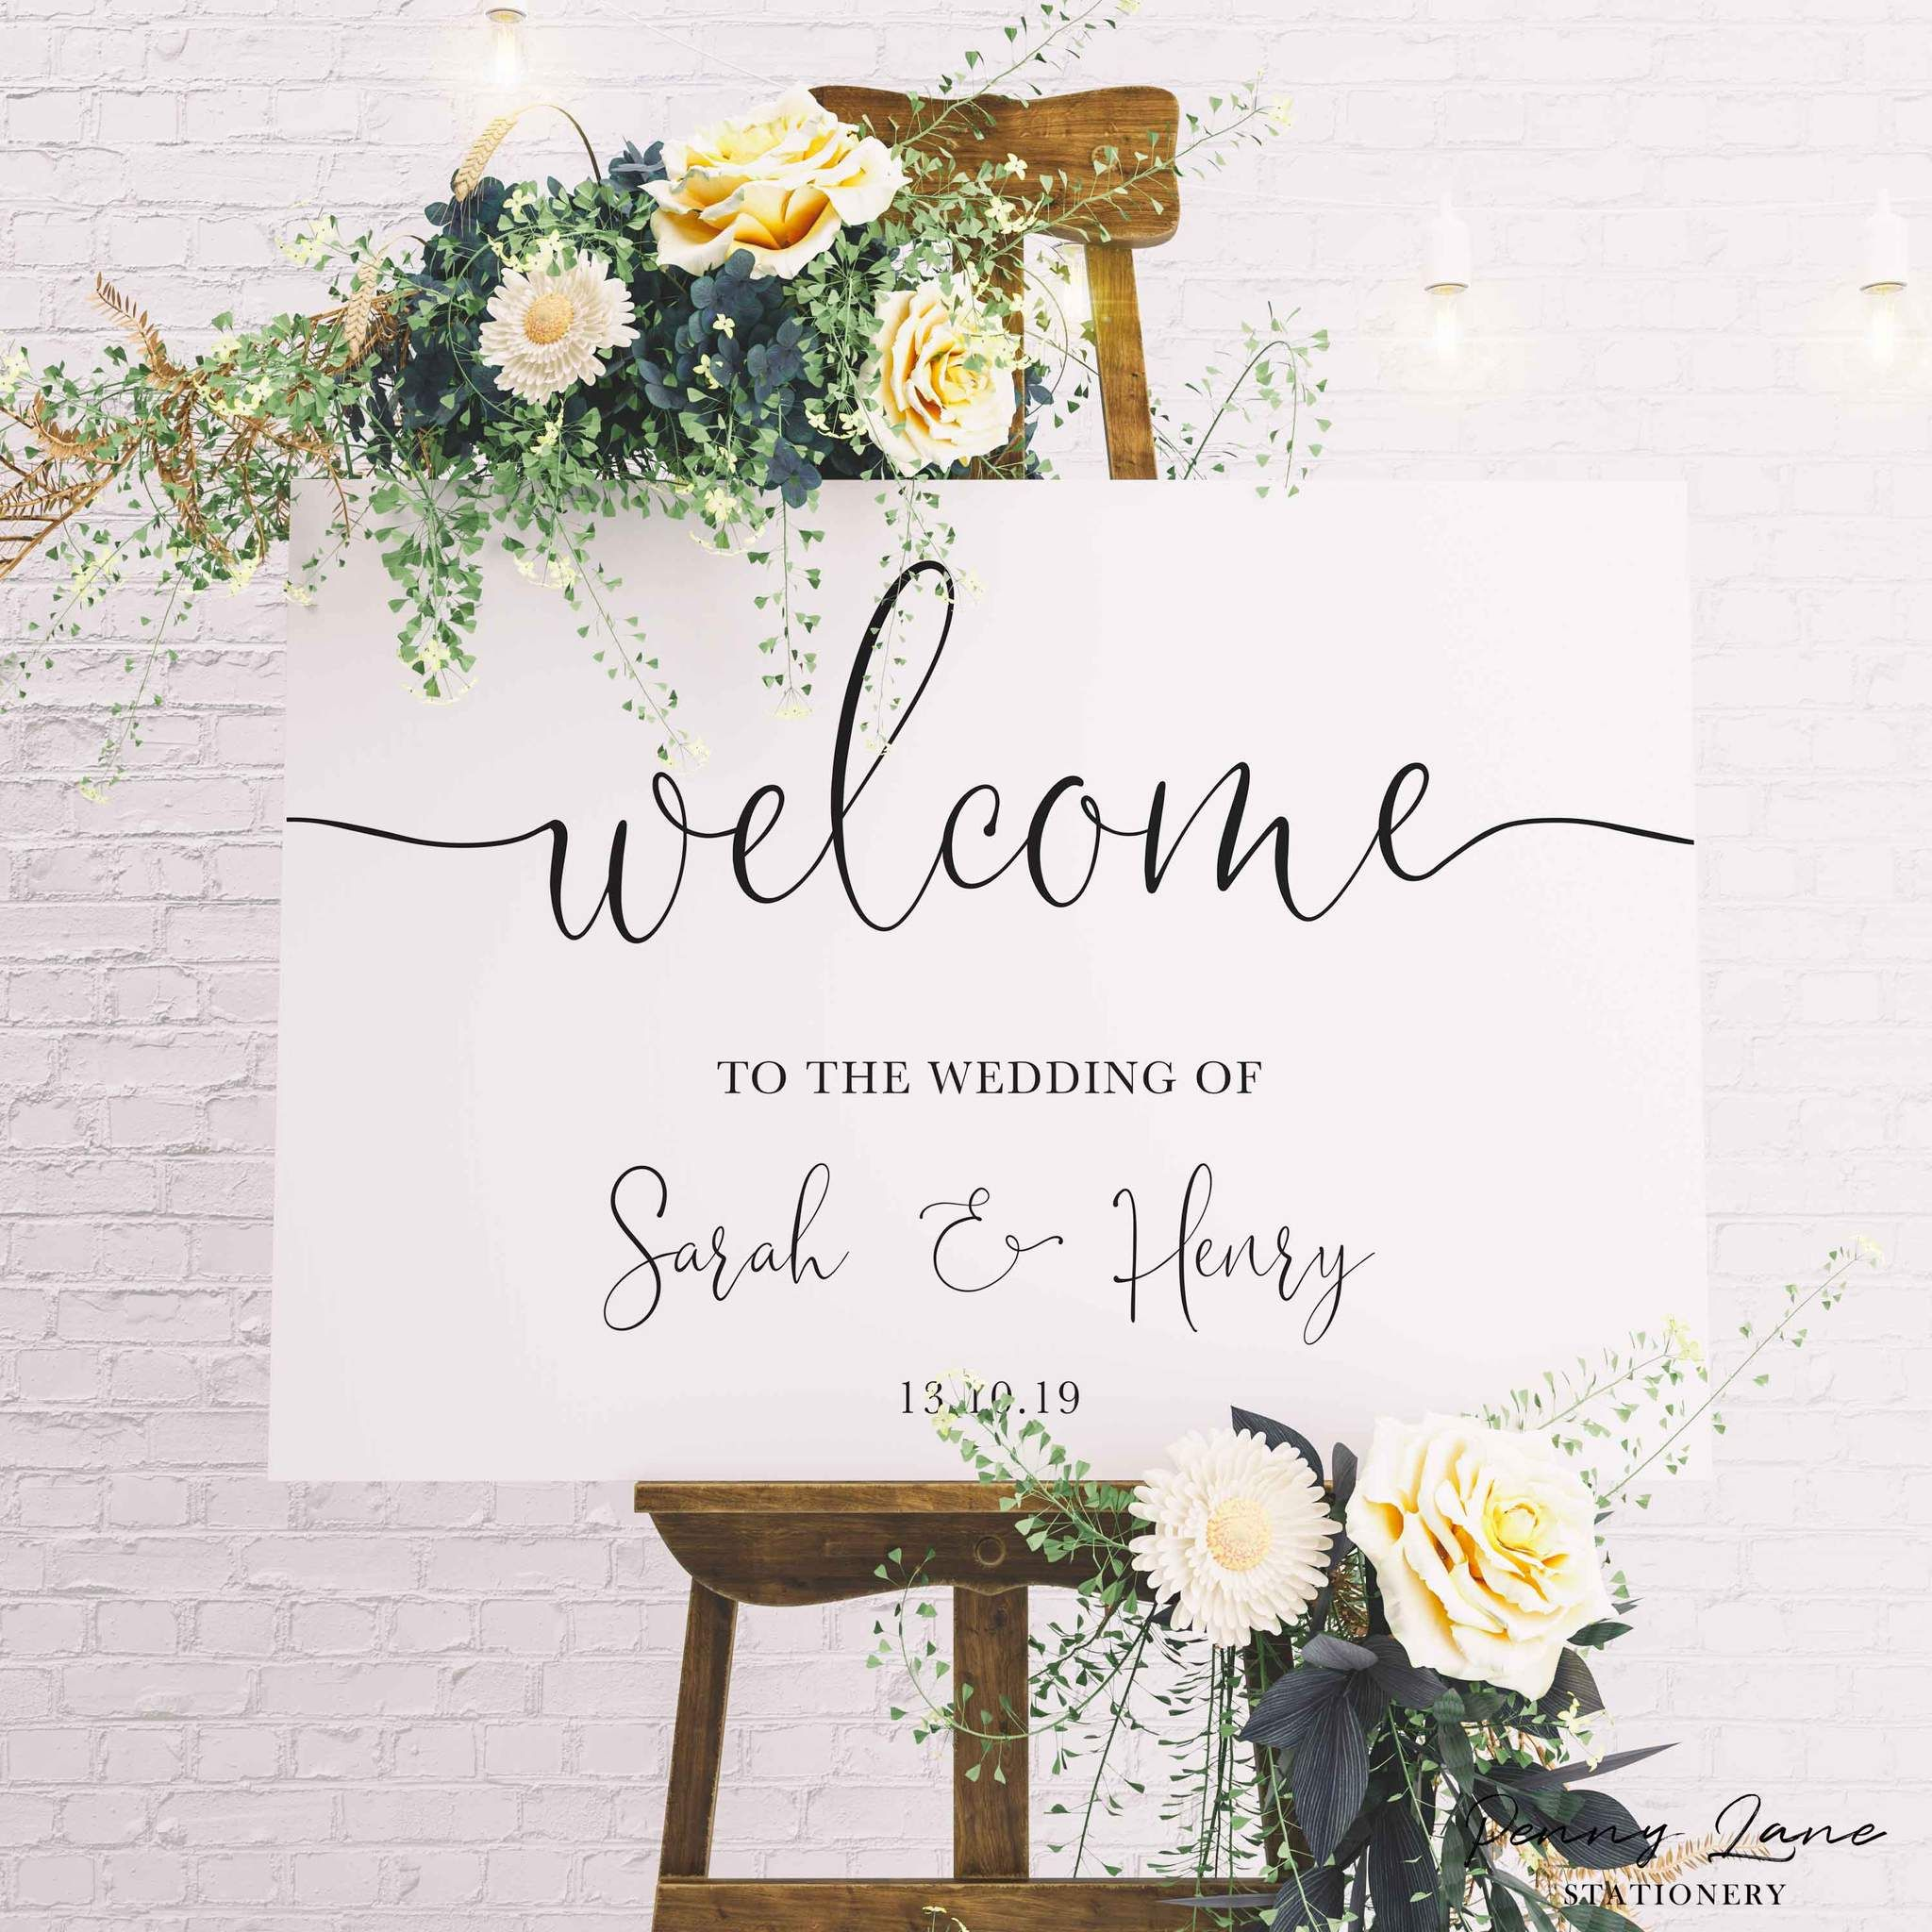 Sophia Minimalist Wedding Welcome Sign In 2020 Wedding Welcome Signs Wedding Entrance Decor Wedding Entrance Sign